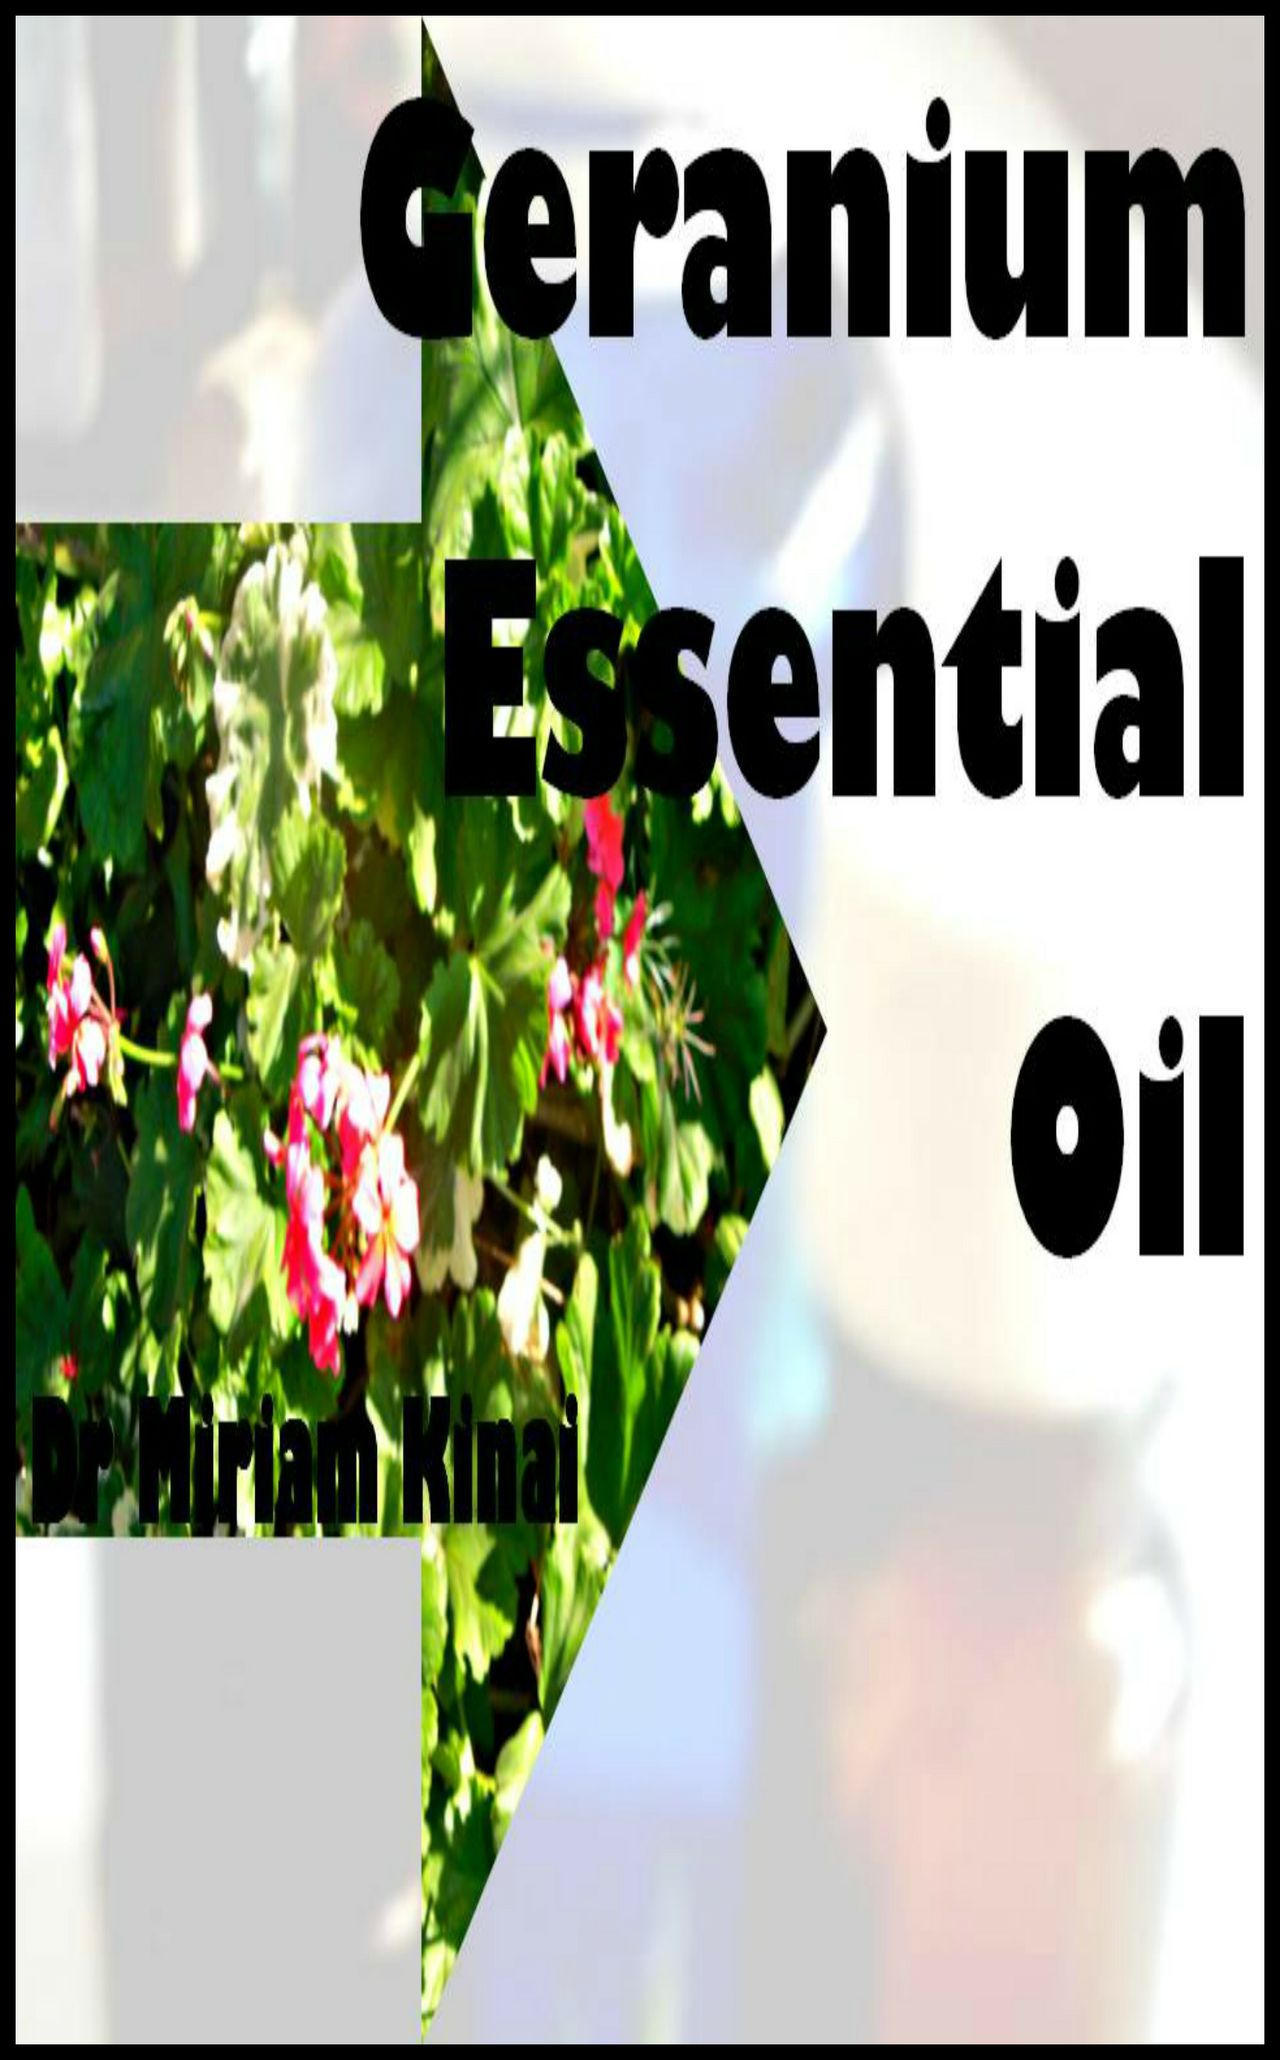 How to Use Geranium Essential Oil